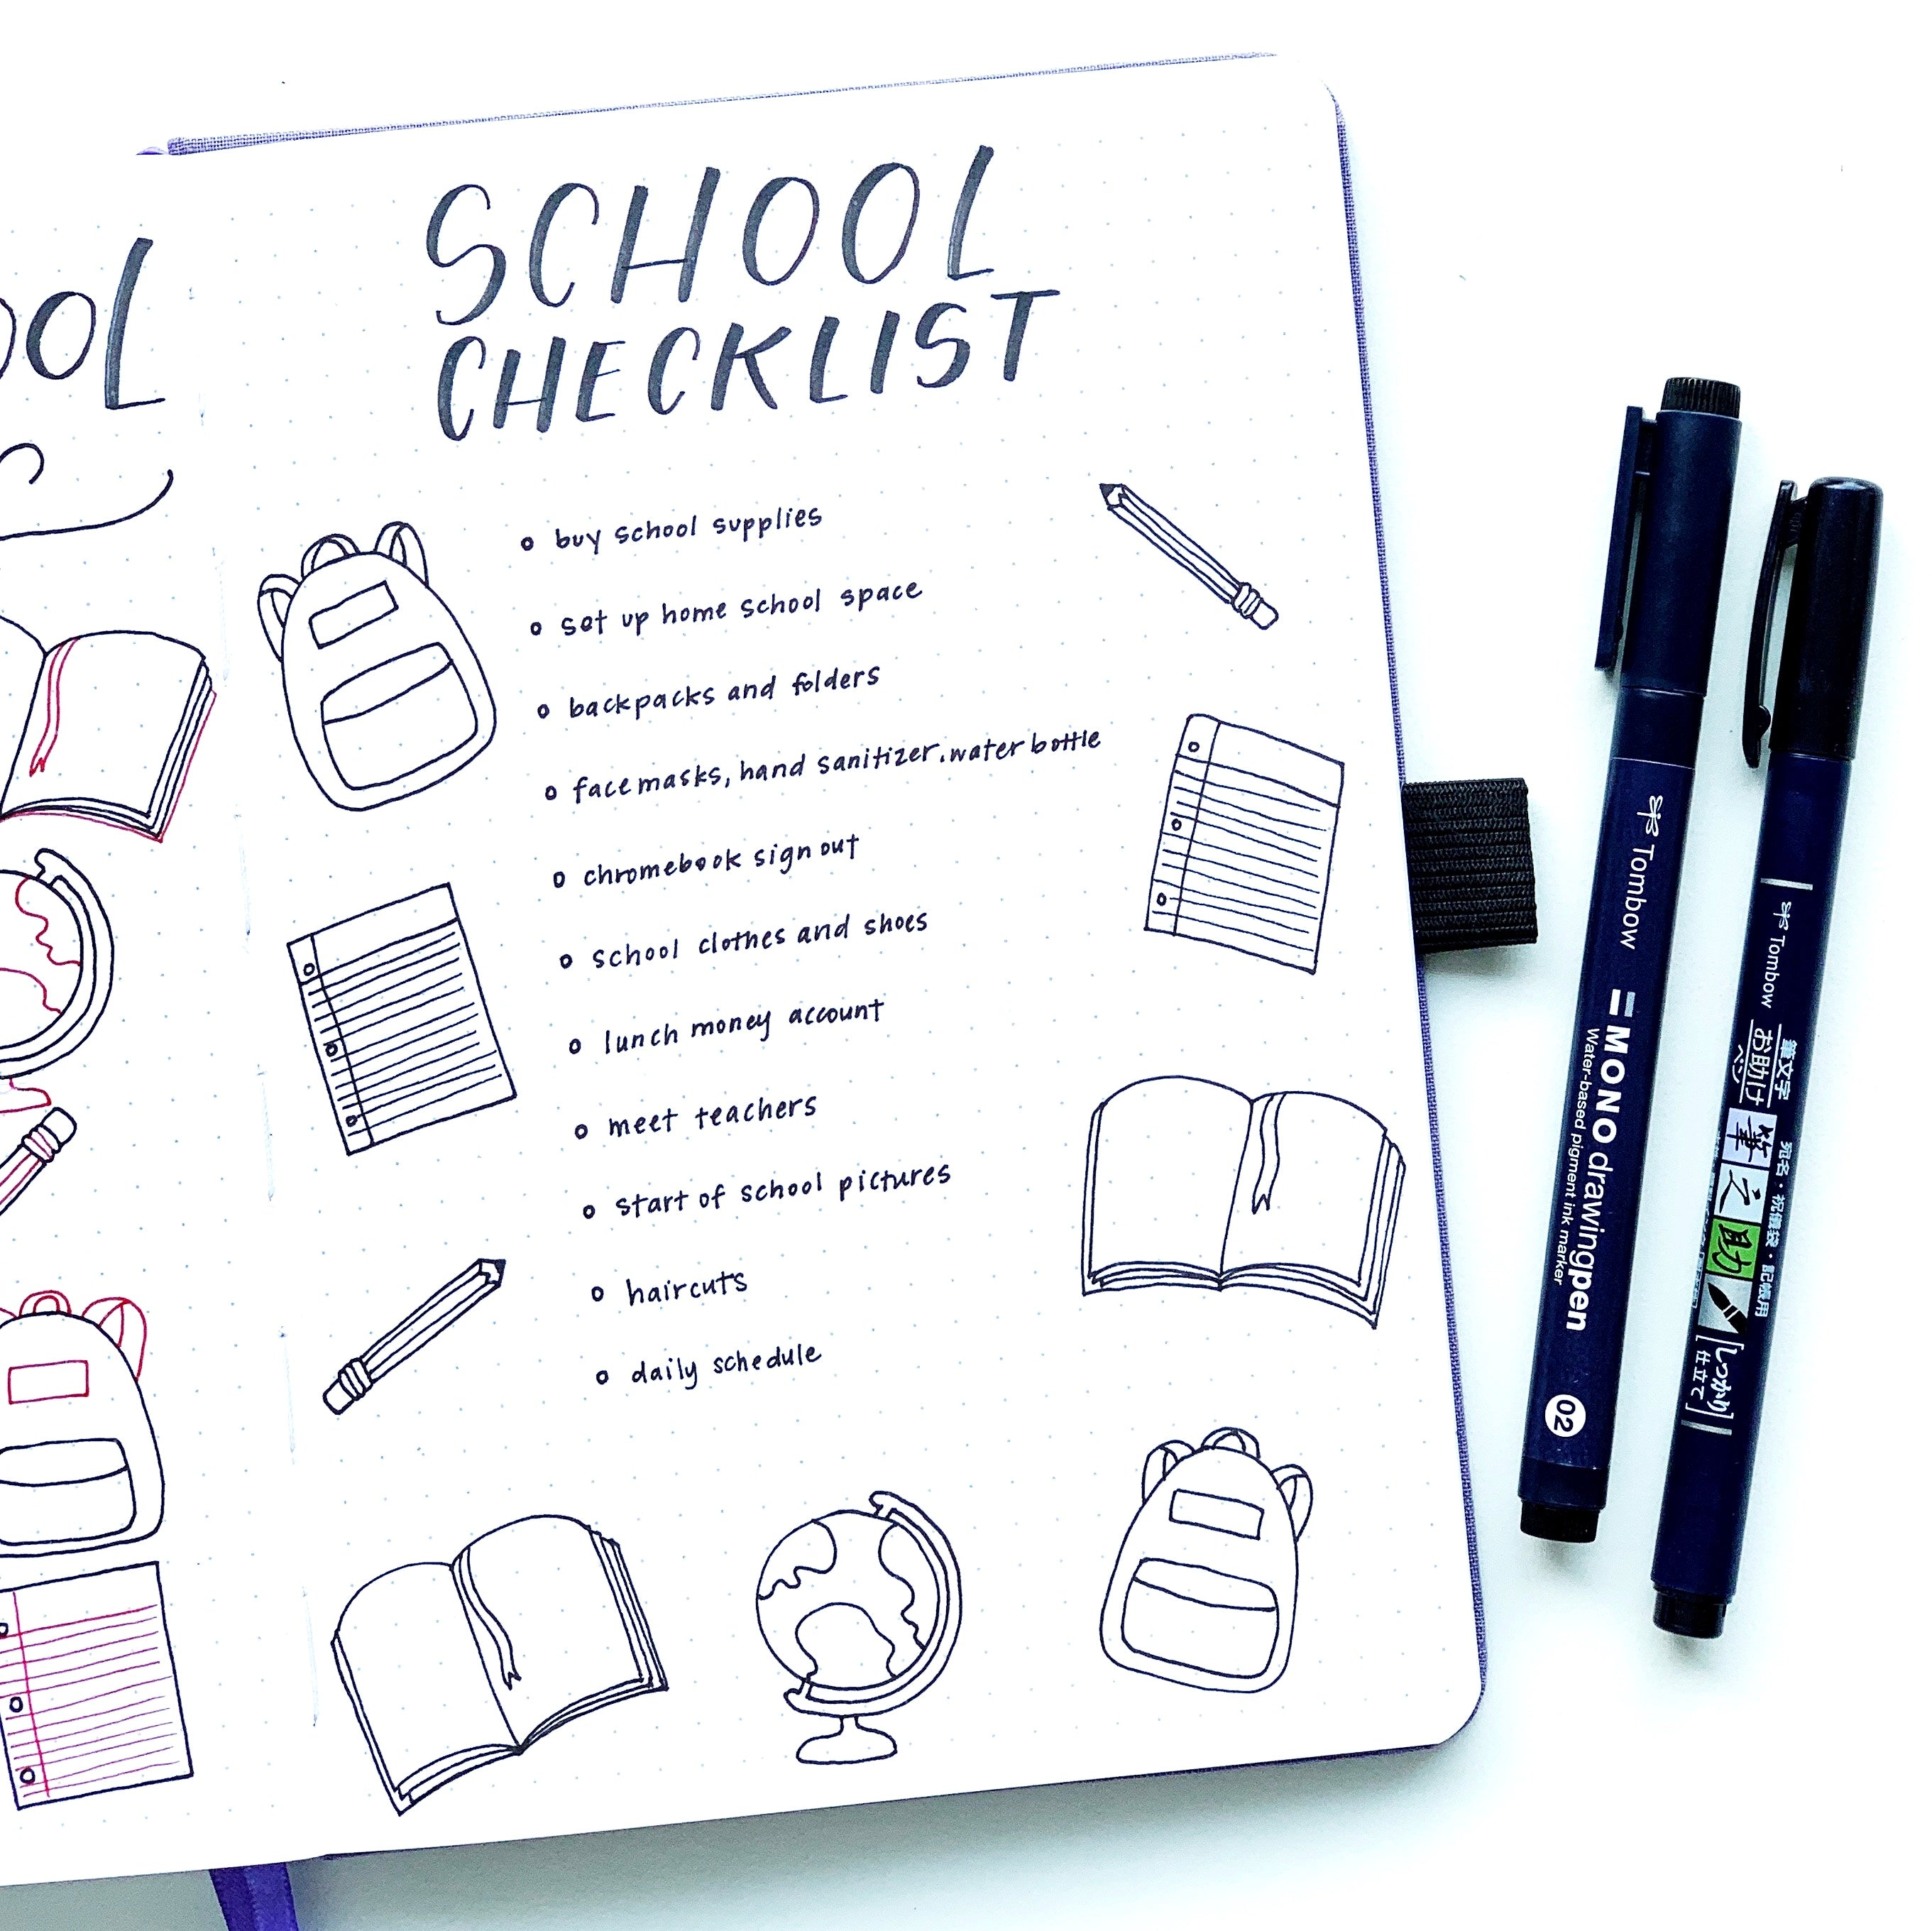 Learn how to create back-to-school doodles in your notebook with Adrienne from @studio80design!